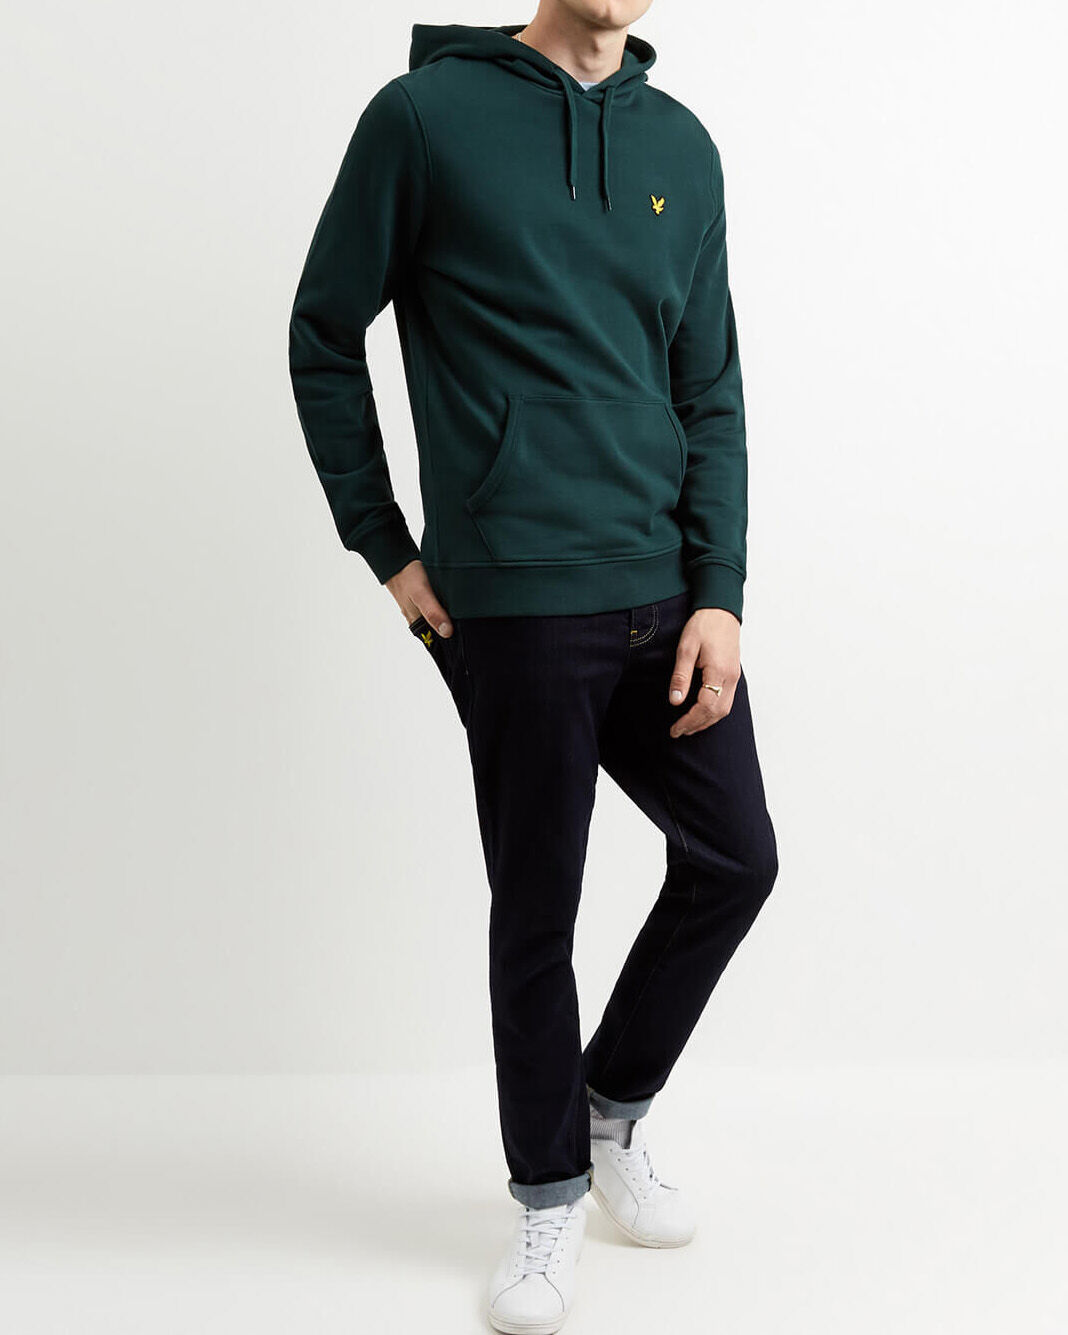 Lyle-and-Scott-Mens-Pullover-Hoodie-Cotton thumbnail 18